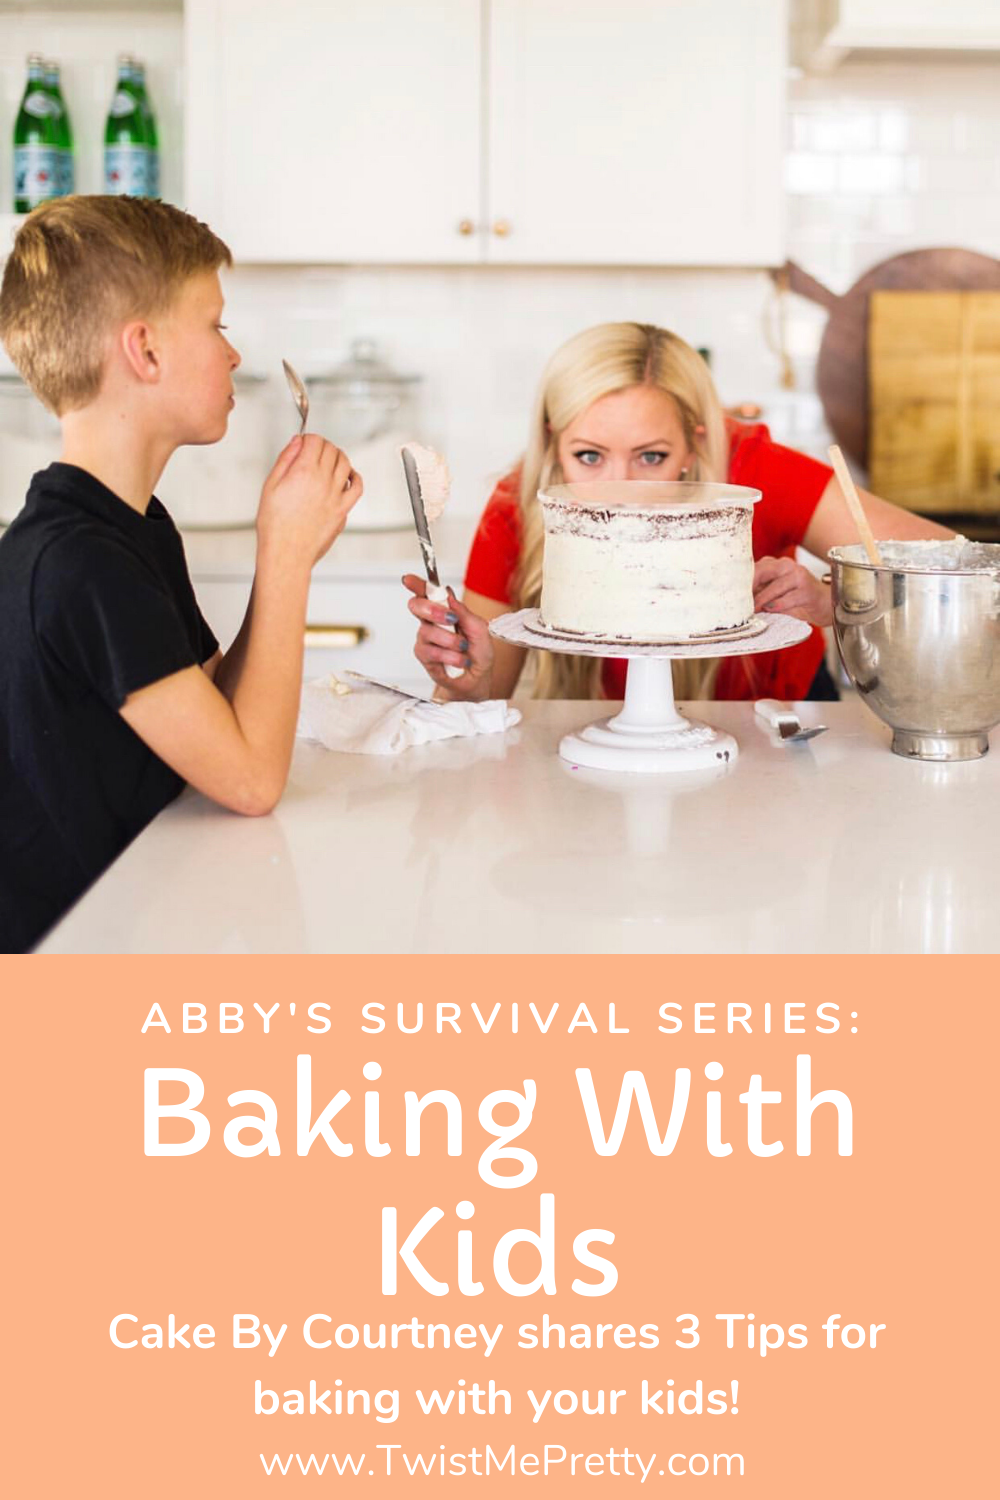 Abby's Survival Series: Baking With Kids- 3 tips for baking with your kids from Cake By Courtney. www.TwistMePretty.com